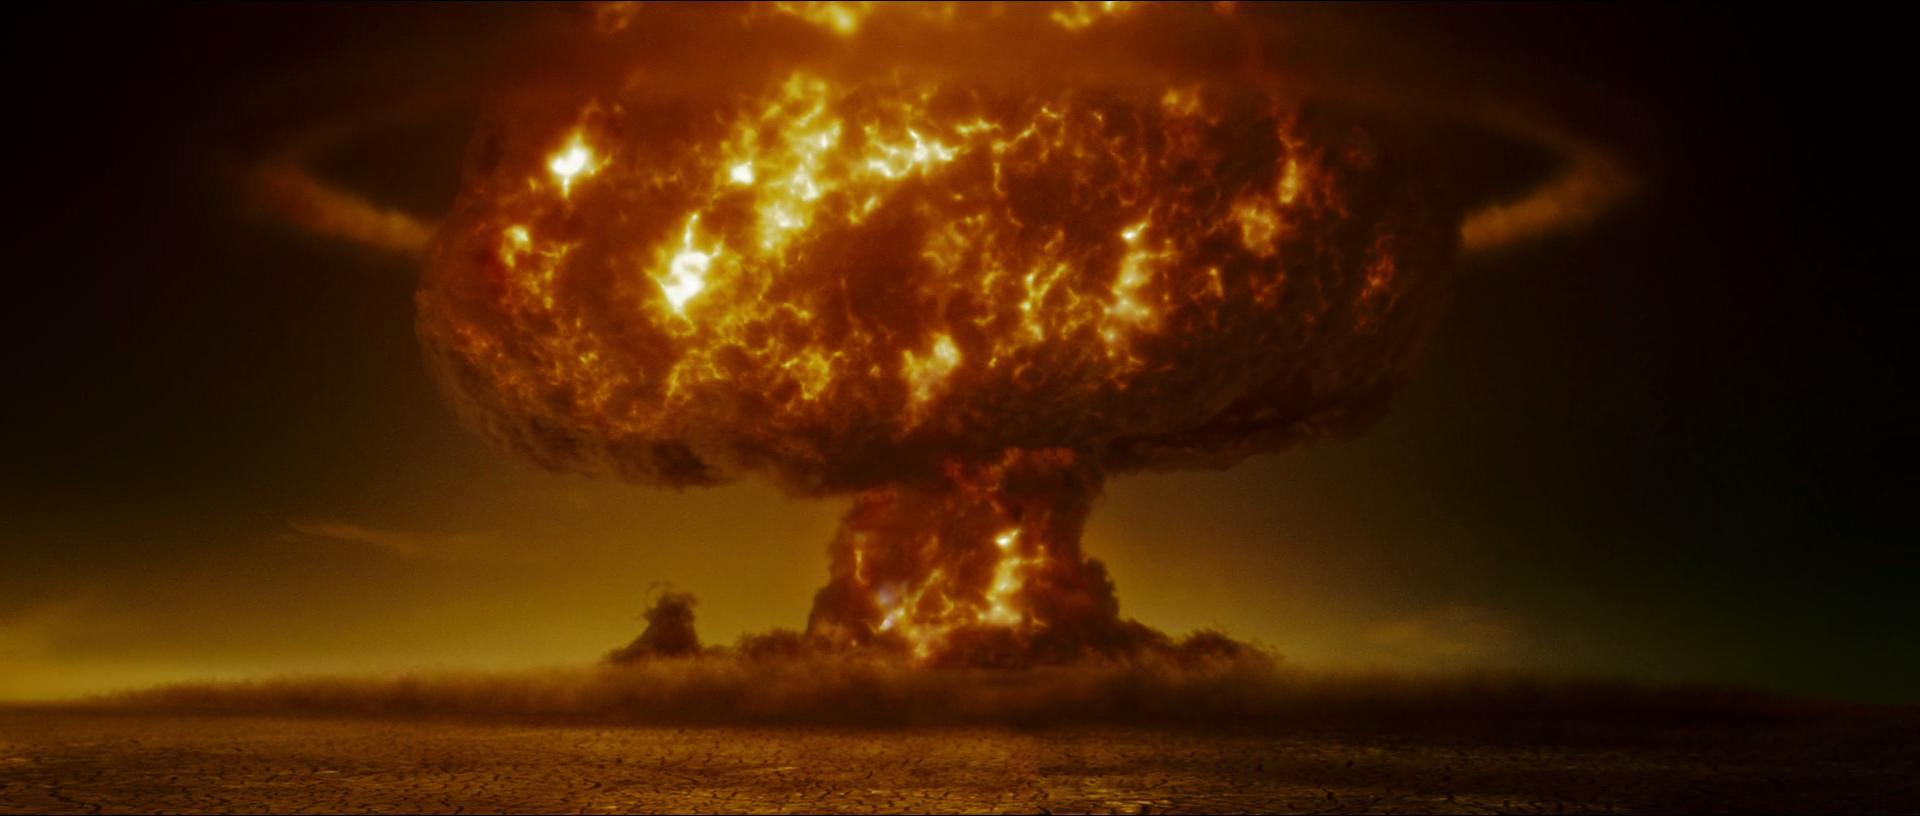 Image For > Nuke Explosion Hd